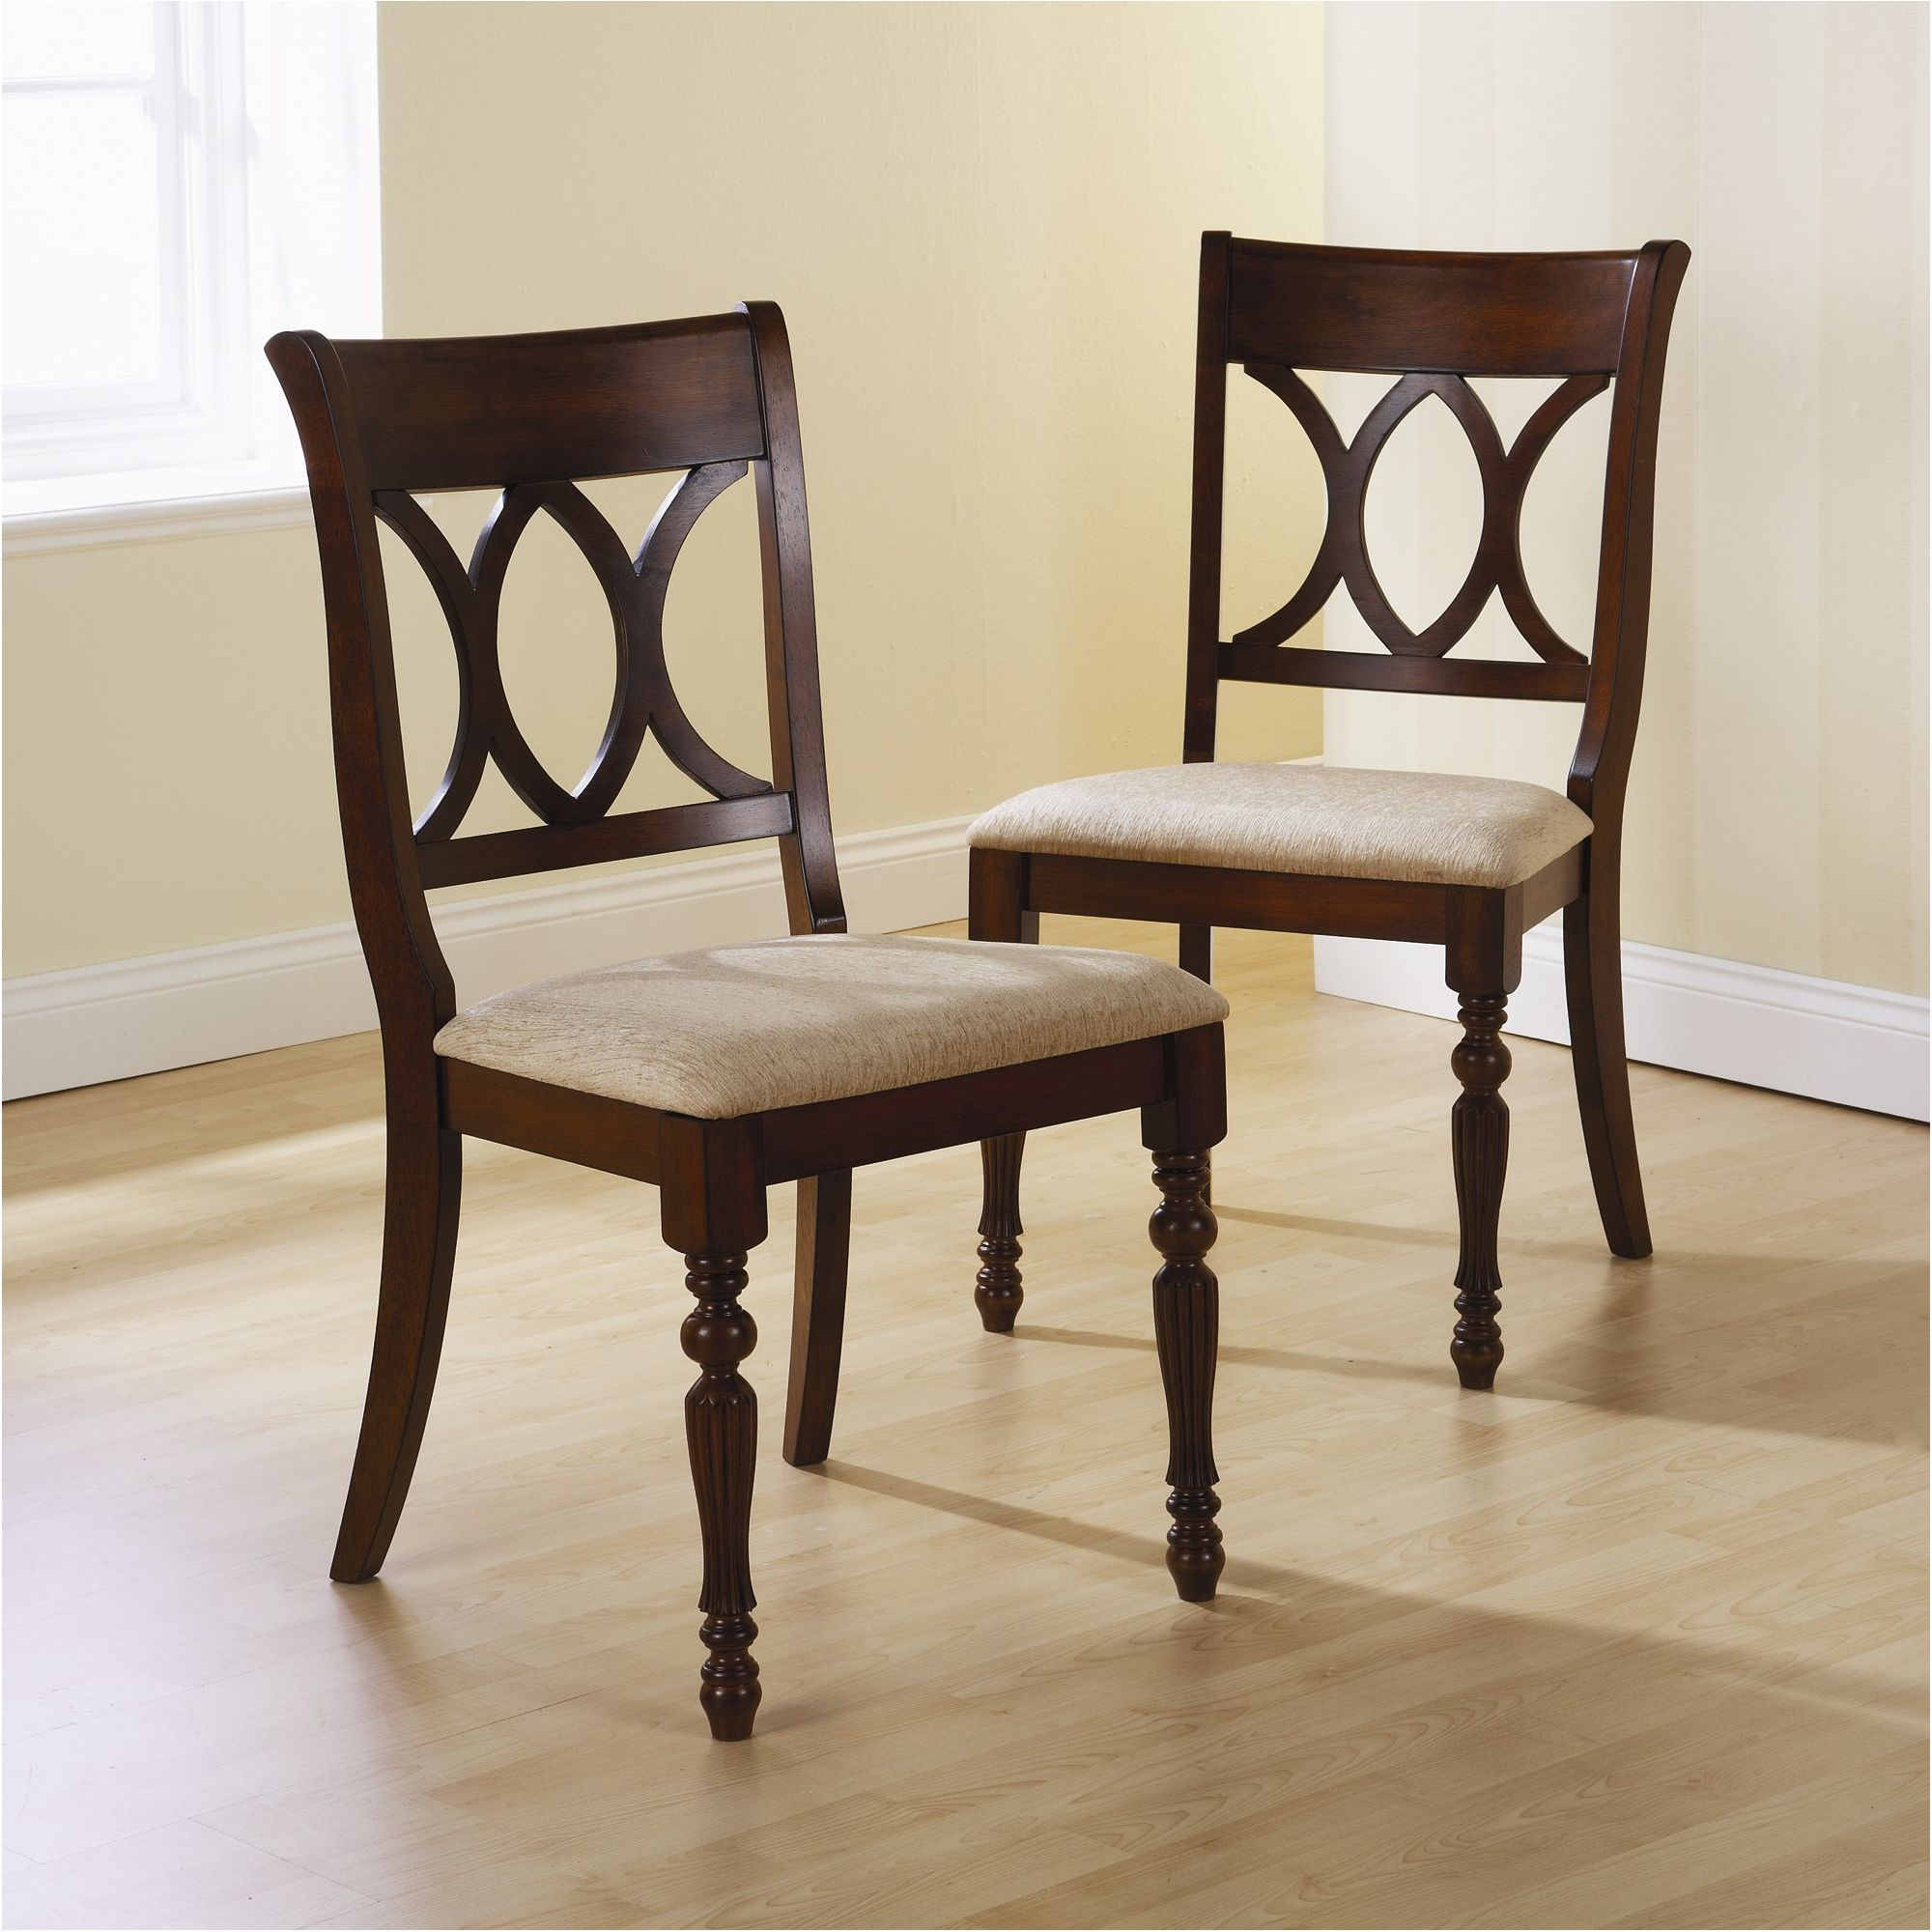 Elements Blossom Dining Chair (Set of 2)